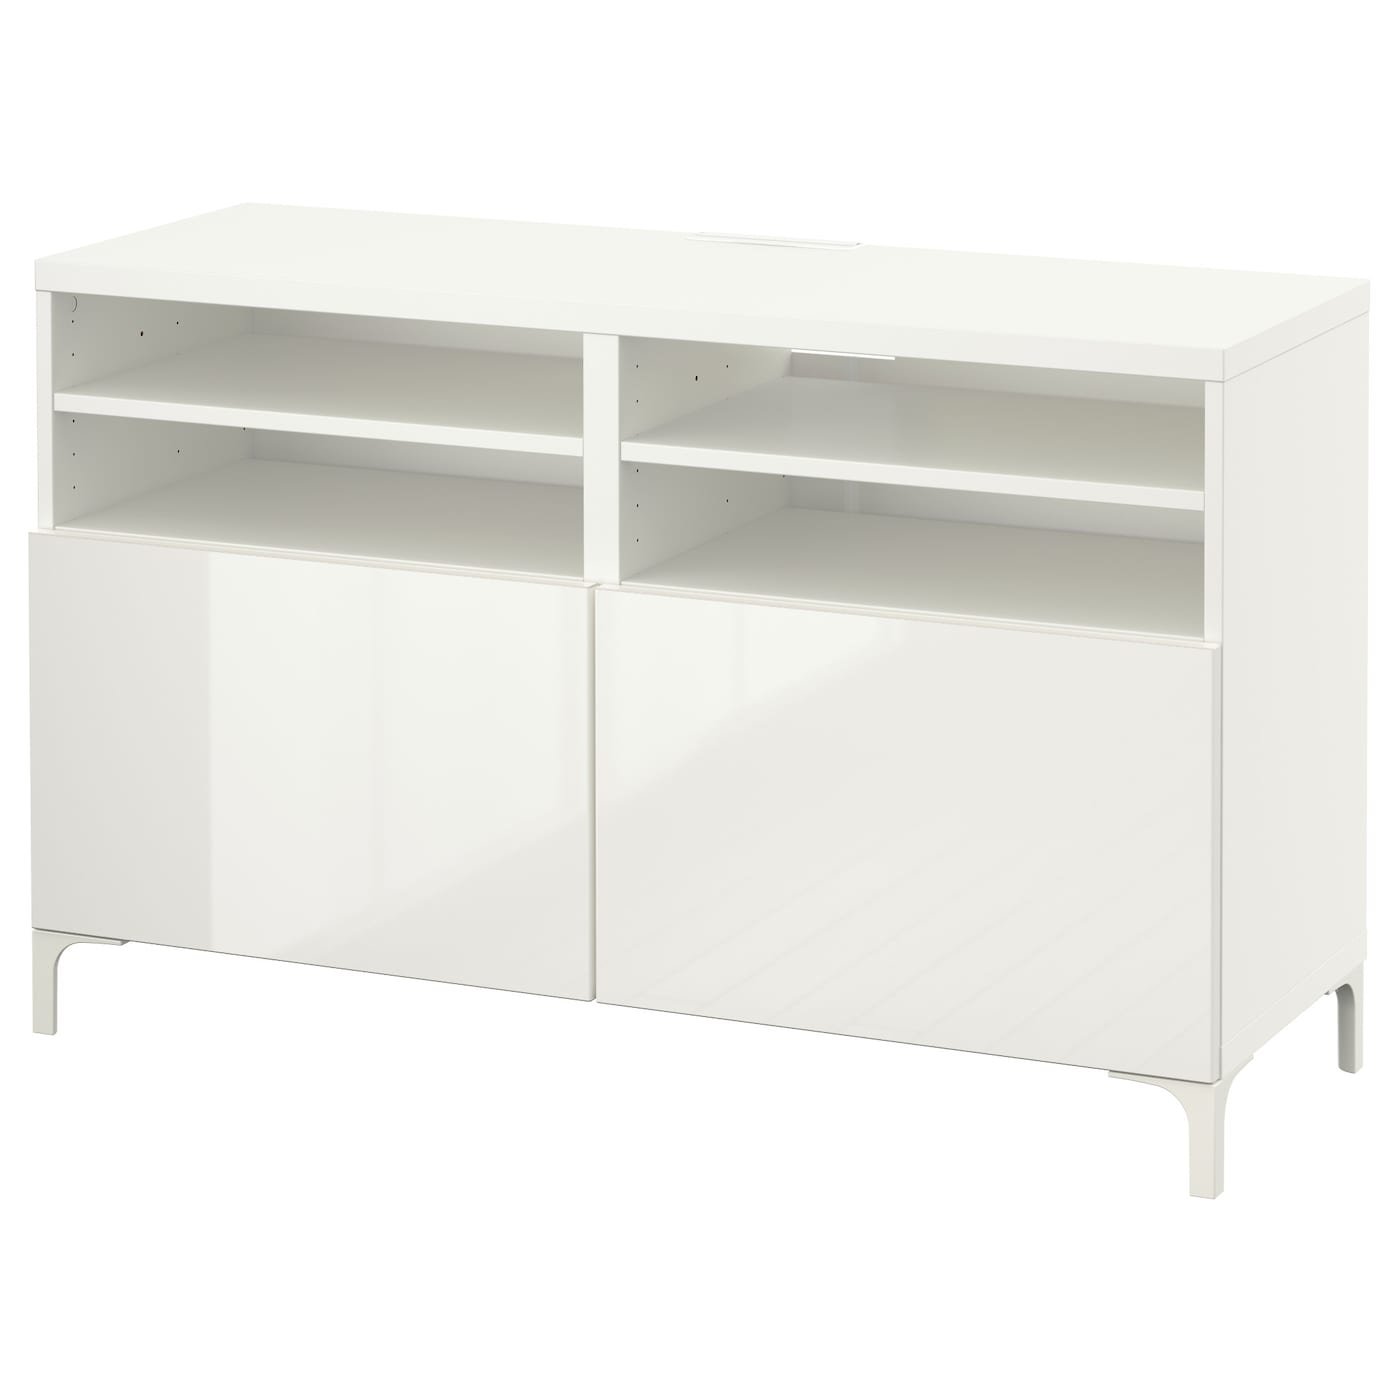 IKEA BESTÅ TV bench with doors